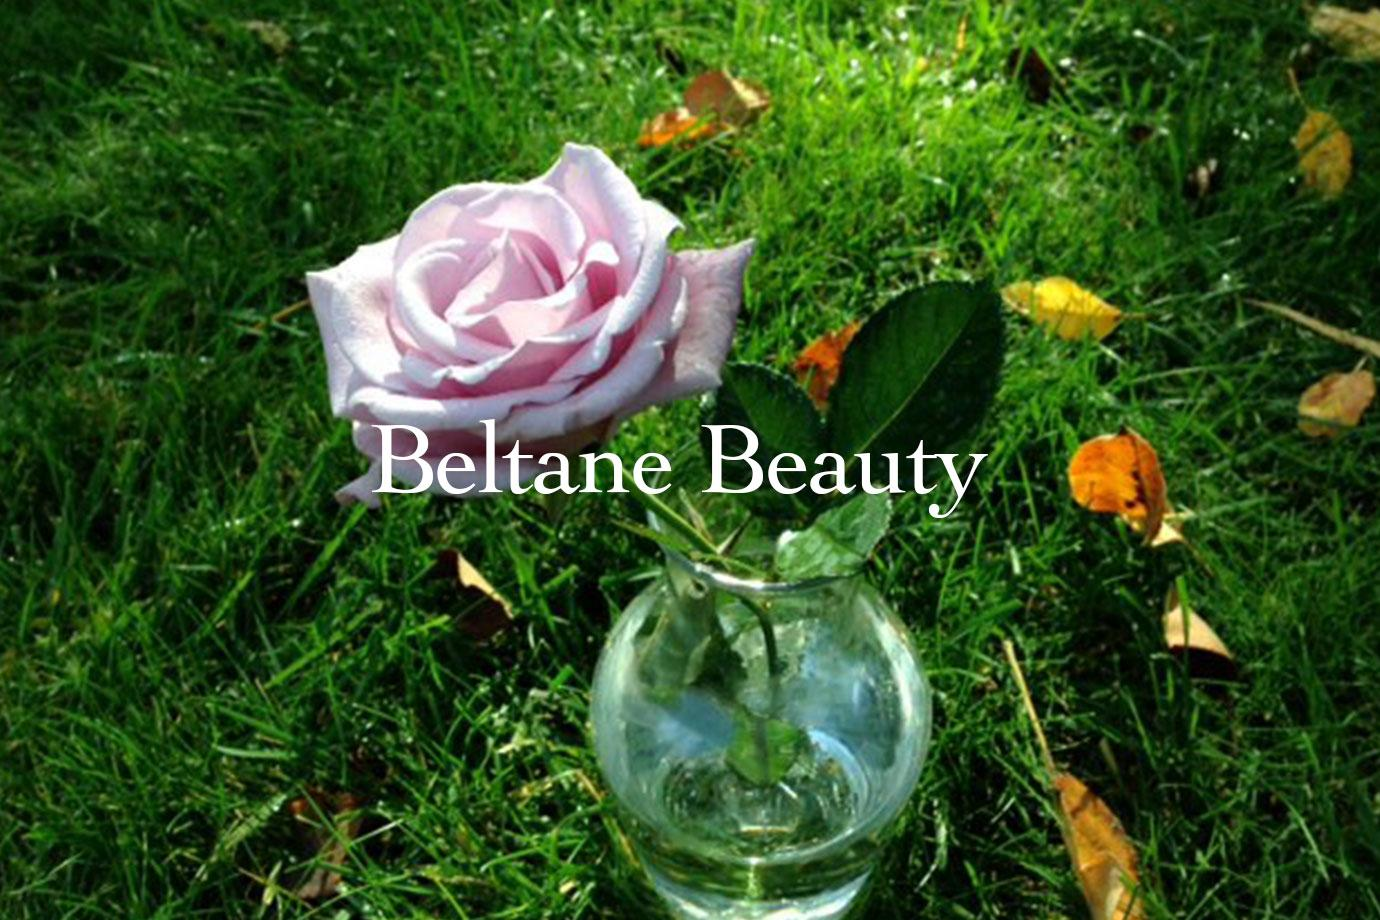 Beltane Beauty